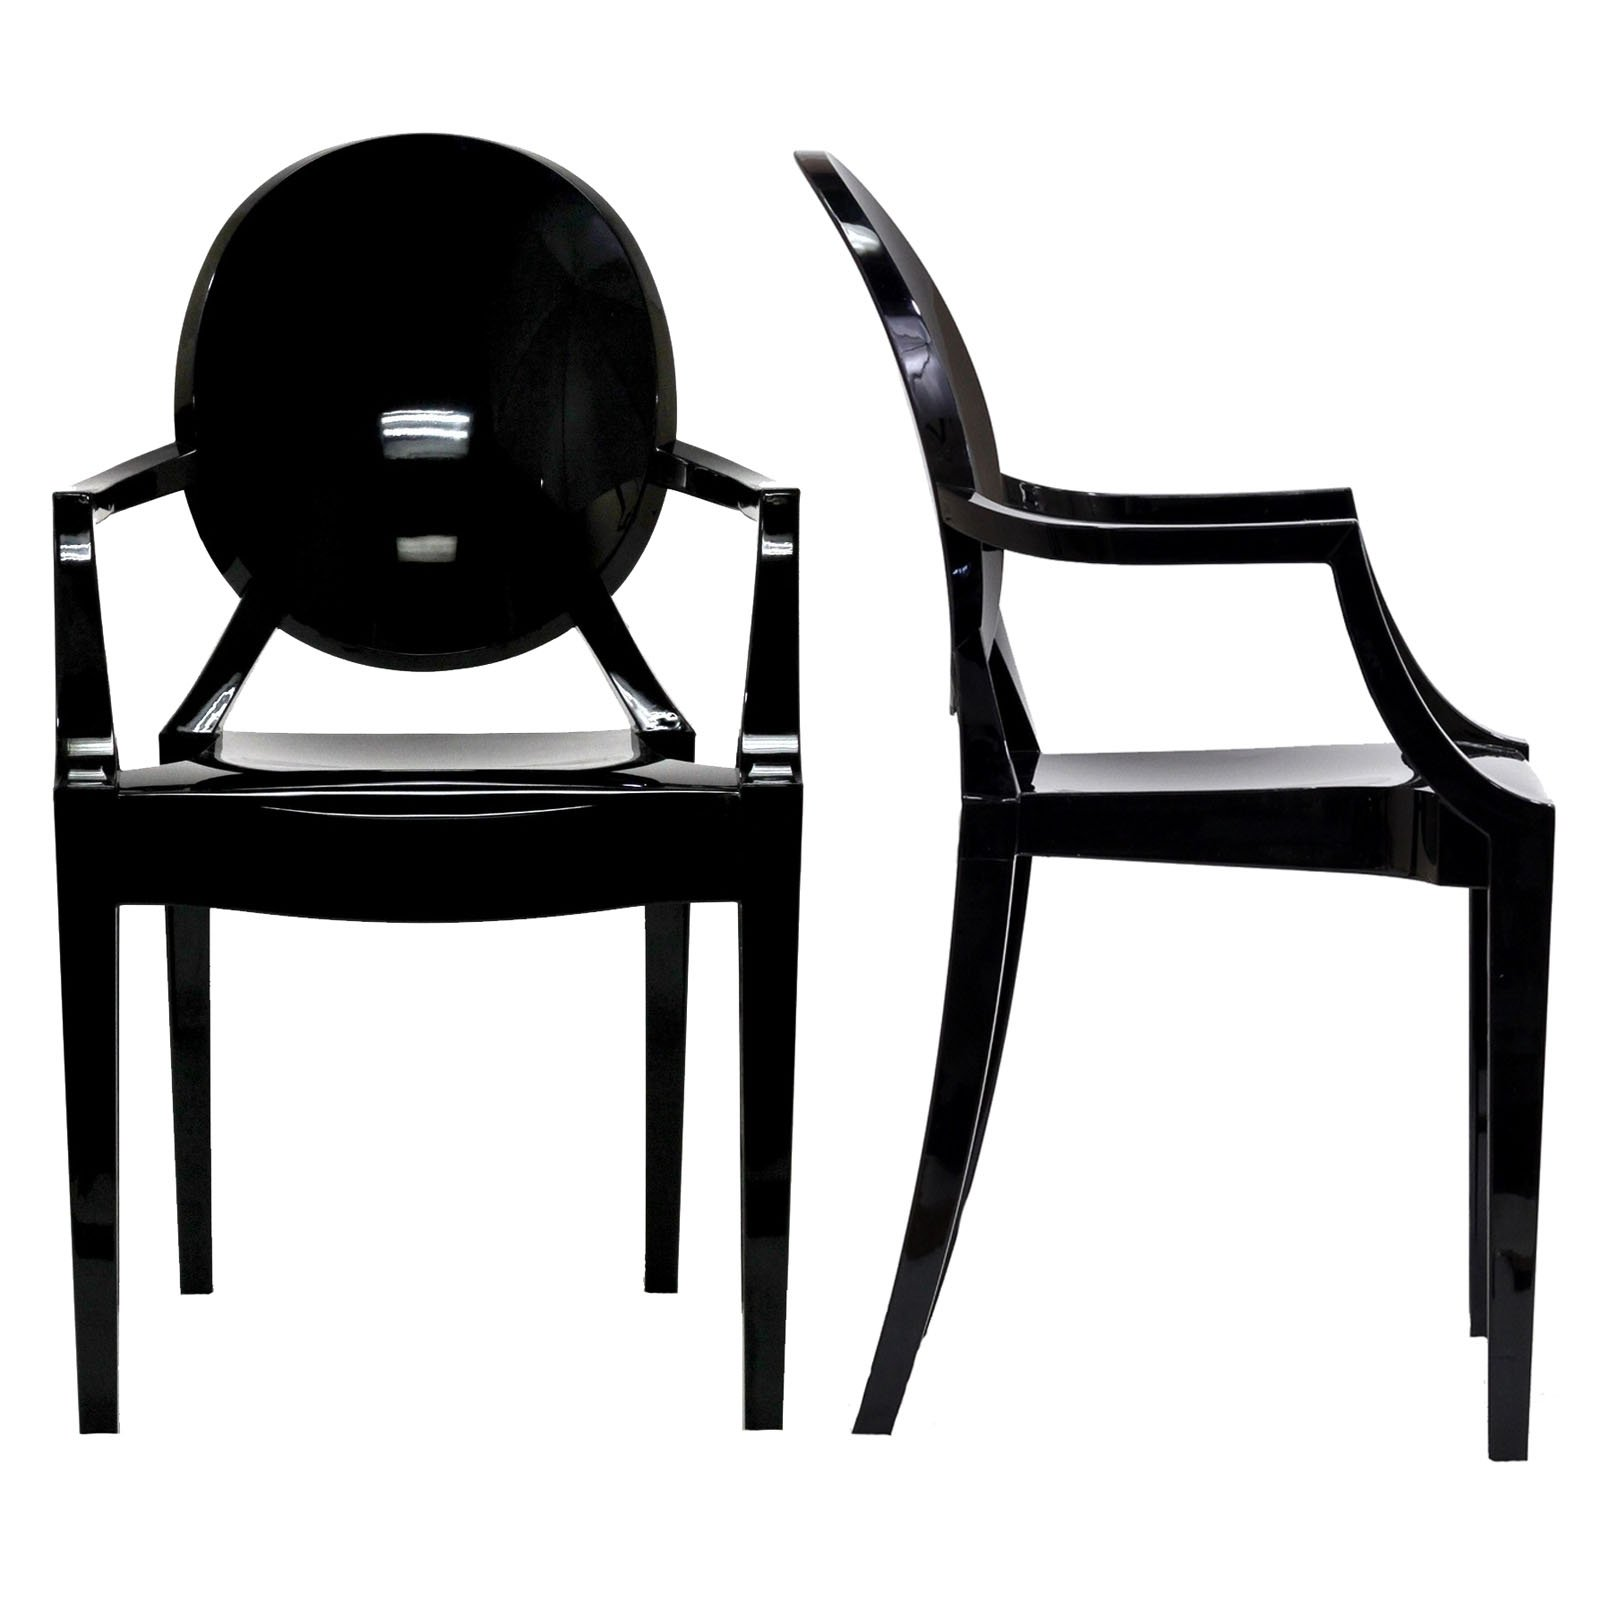 Modway Casper Modern Acrylic Dining Armchairs in Black - Set of 2 by Modway